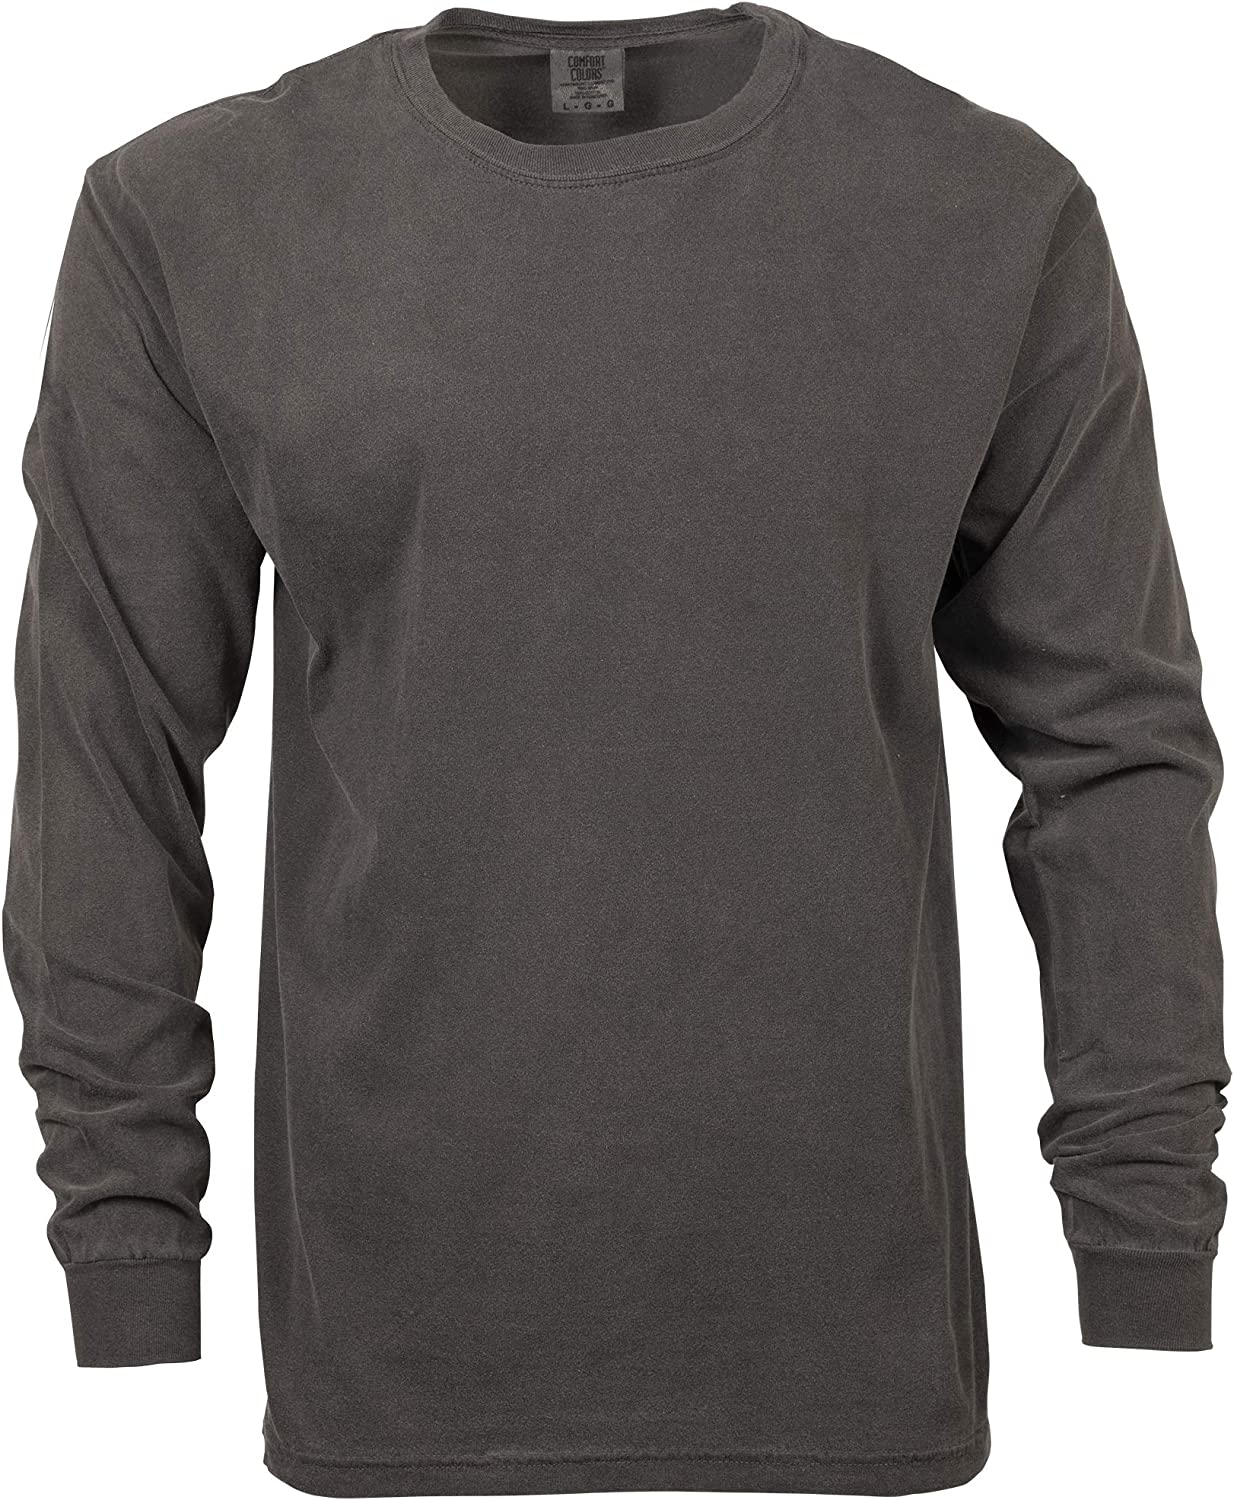 Comfort Colors Men's Adult Long Sleeve Tee, Style 6014: Clothing